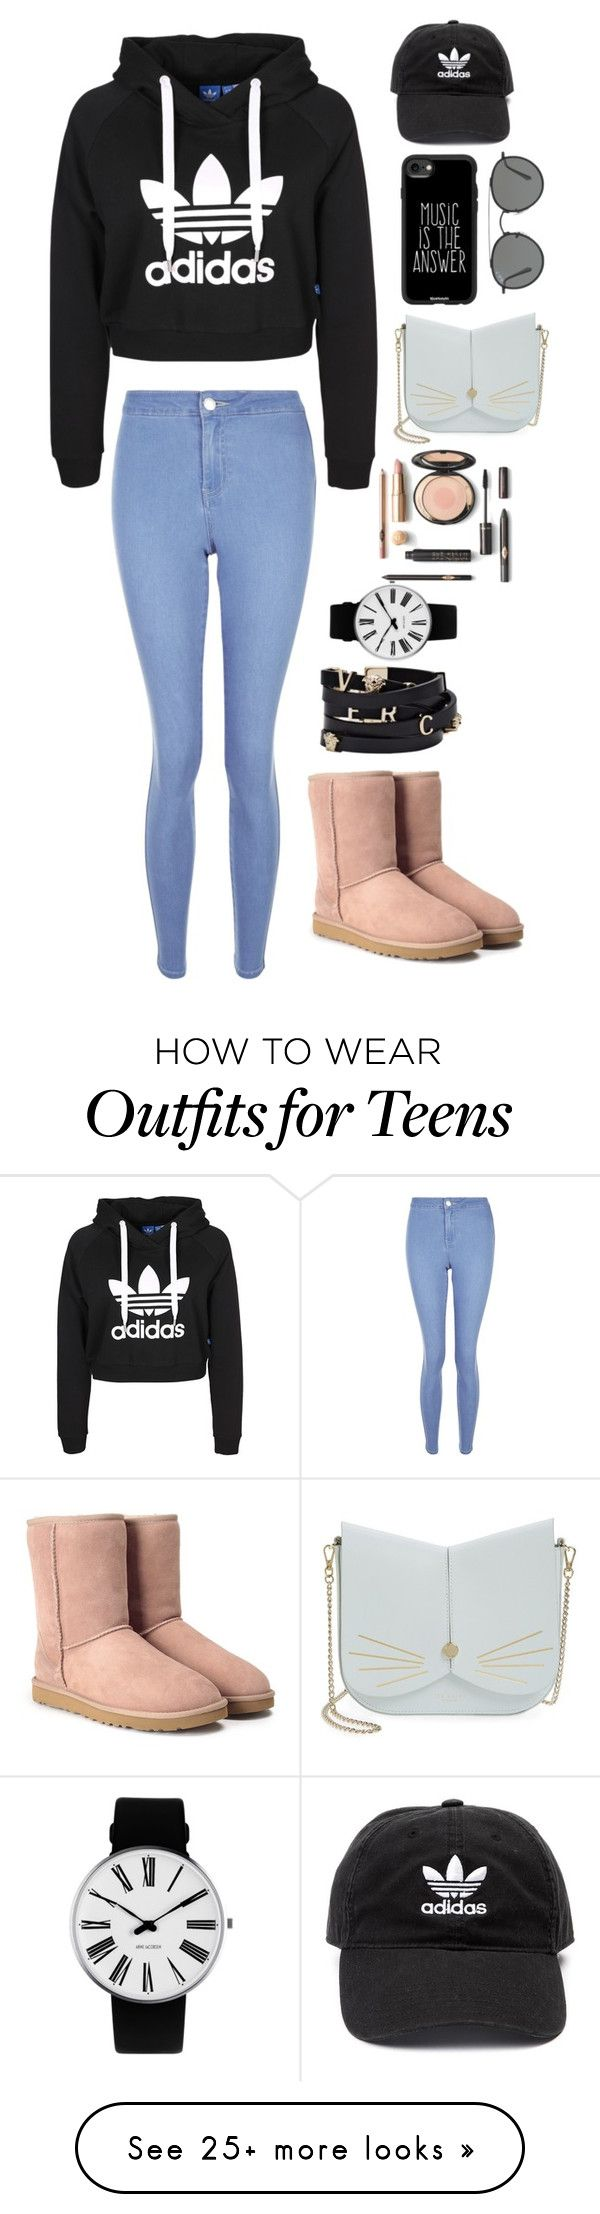 """Untitled #54"" by maliha921 on Polyvore featuring New Look, UGG, Versace, Rosendahl, Ted Baker, Casetify, Ray-Ban and adidas"